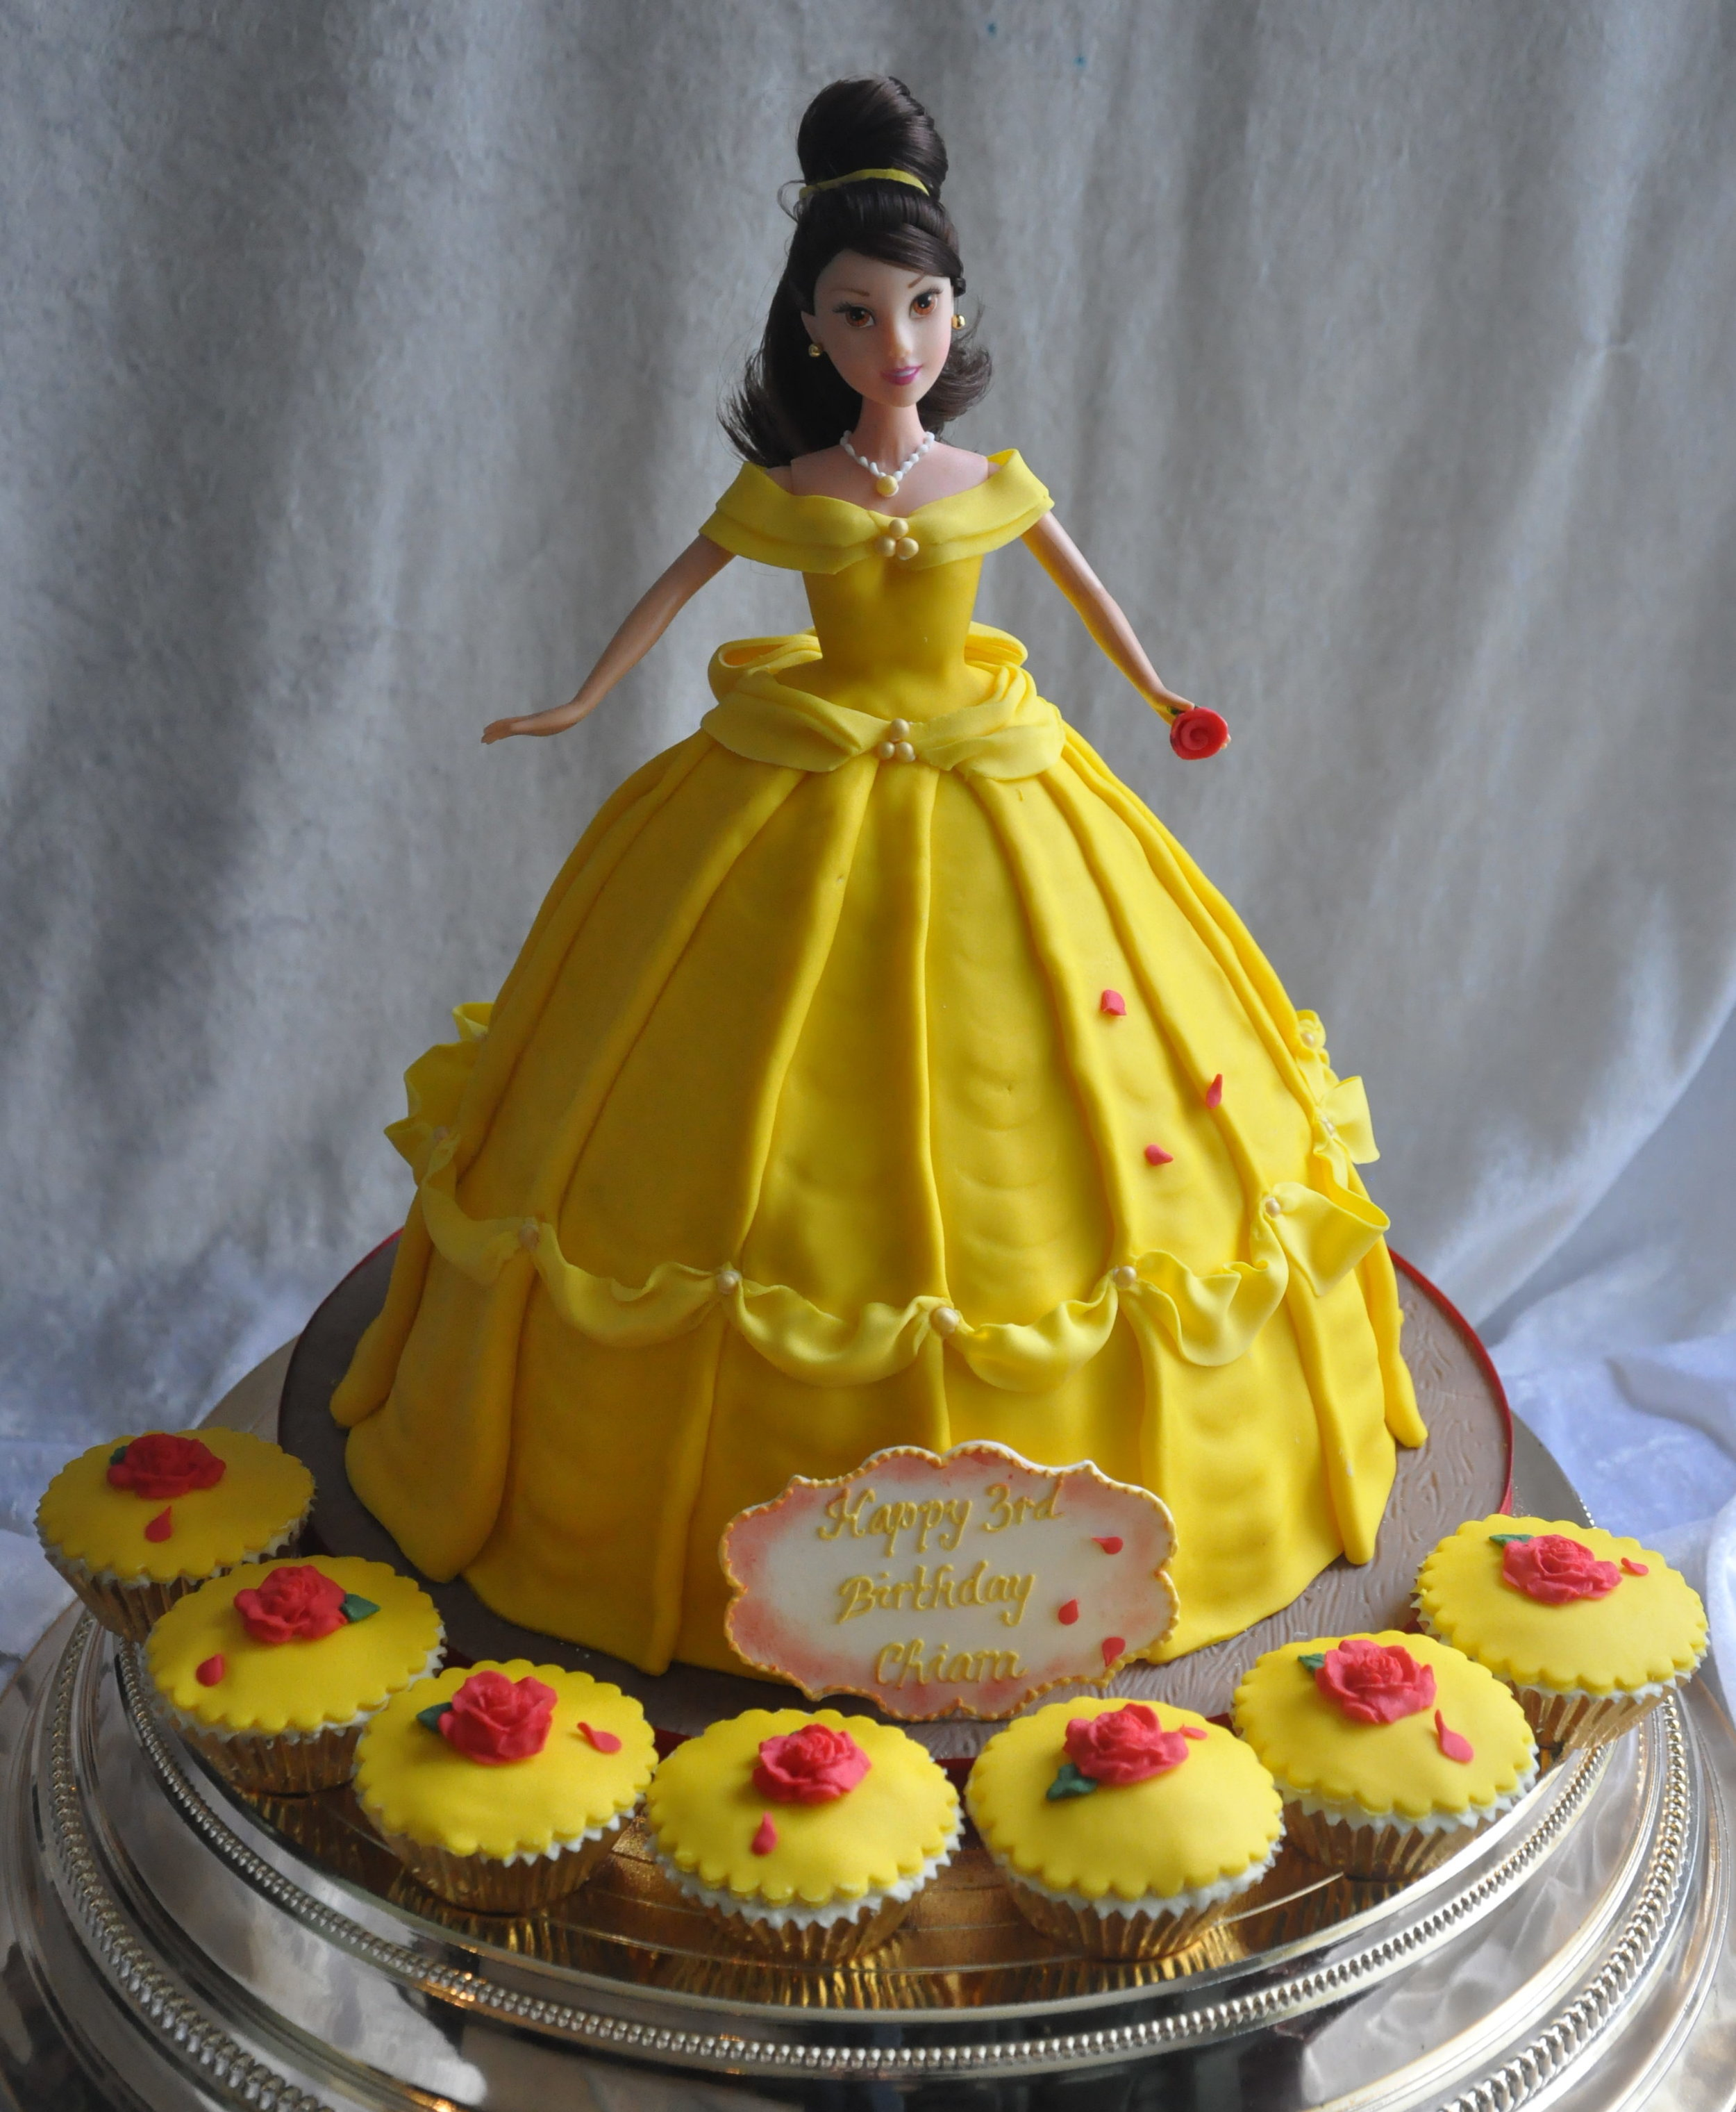 Beauty Belle - Our beautiful Belle cake. Hand made in delicious vanilla sponge, butter cream and jam, finished with sugar icing. Every detail is perfect, the swish of her gown, the swag details on the dress and complete with a sugar rose and its falling petals, A memorable cake with matching cupcakes. A wonderful centrepiece for your Princess Party.